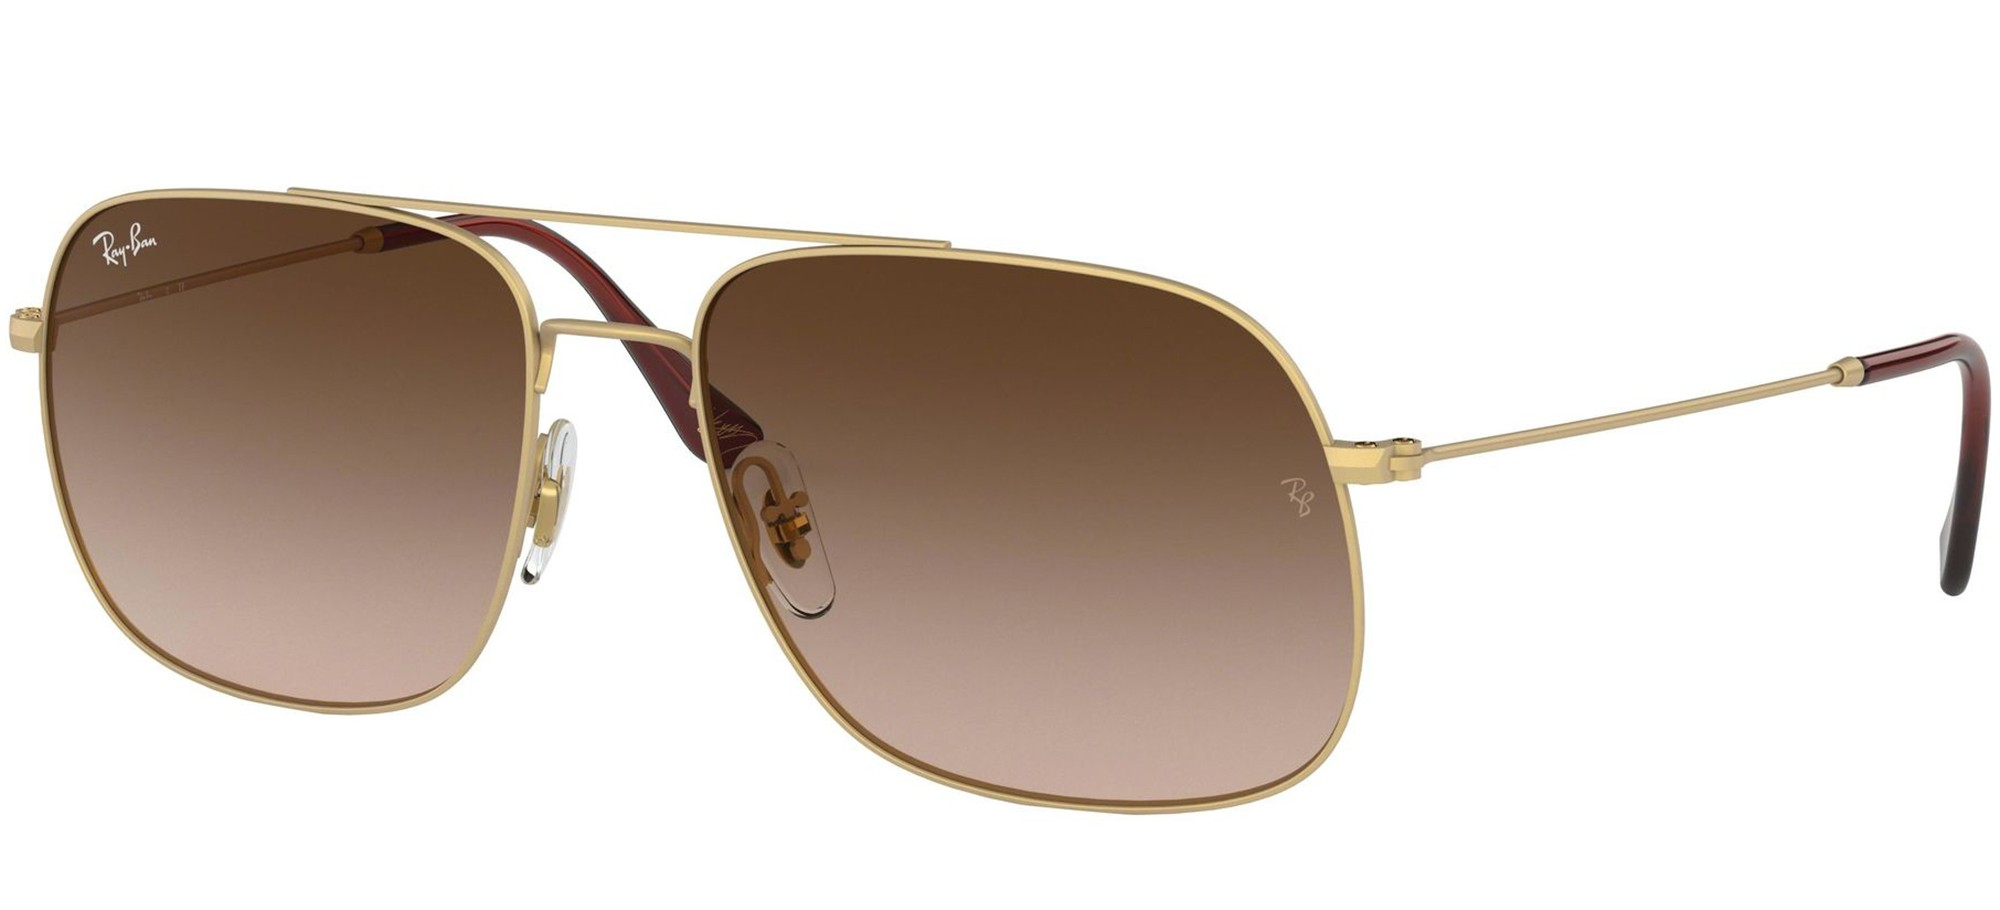 Ray-Ban solbriller ANDREA RB 3595